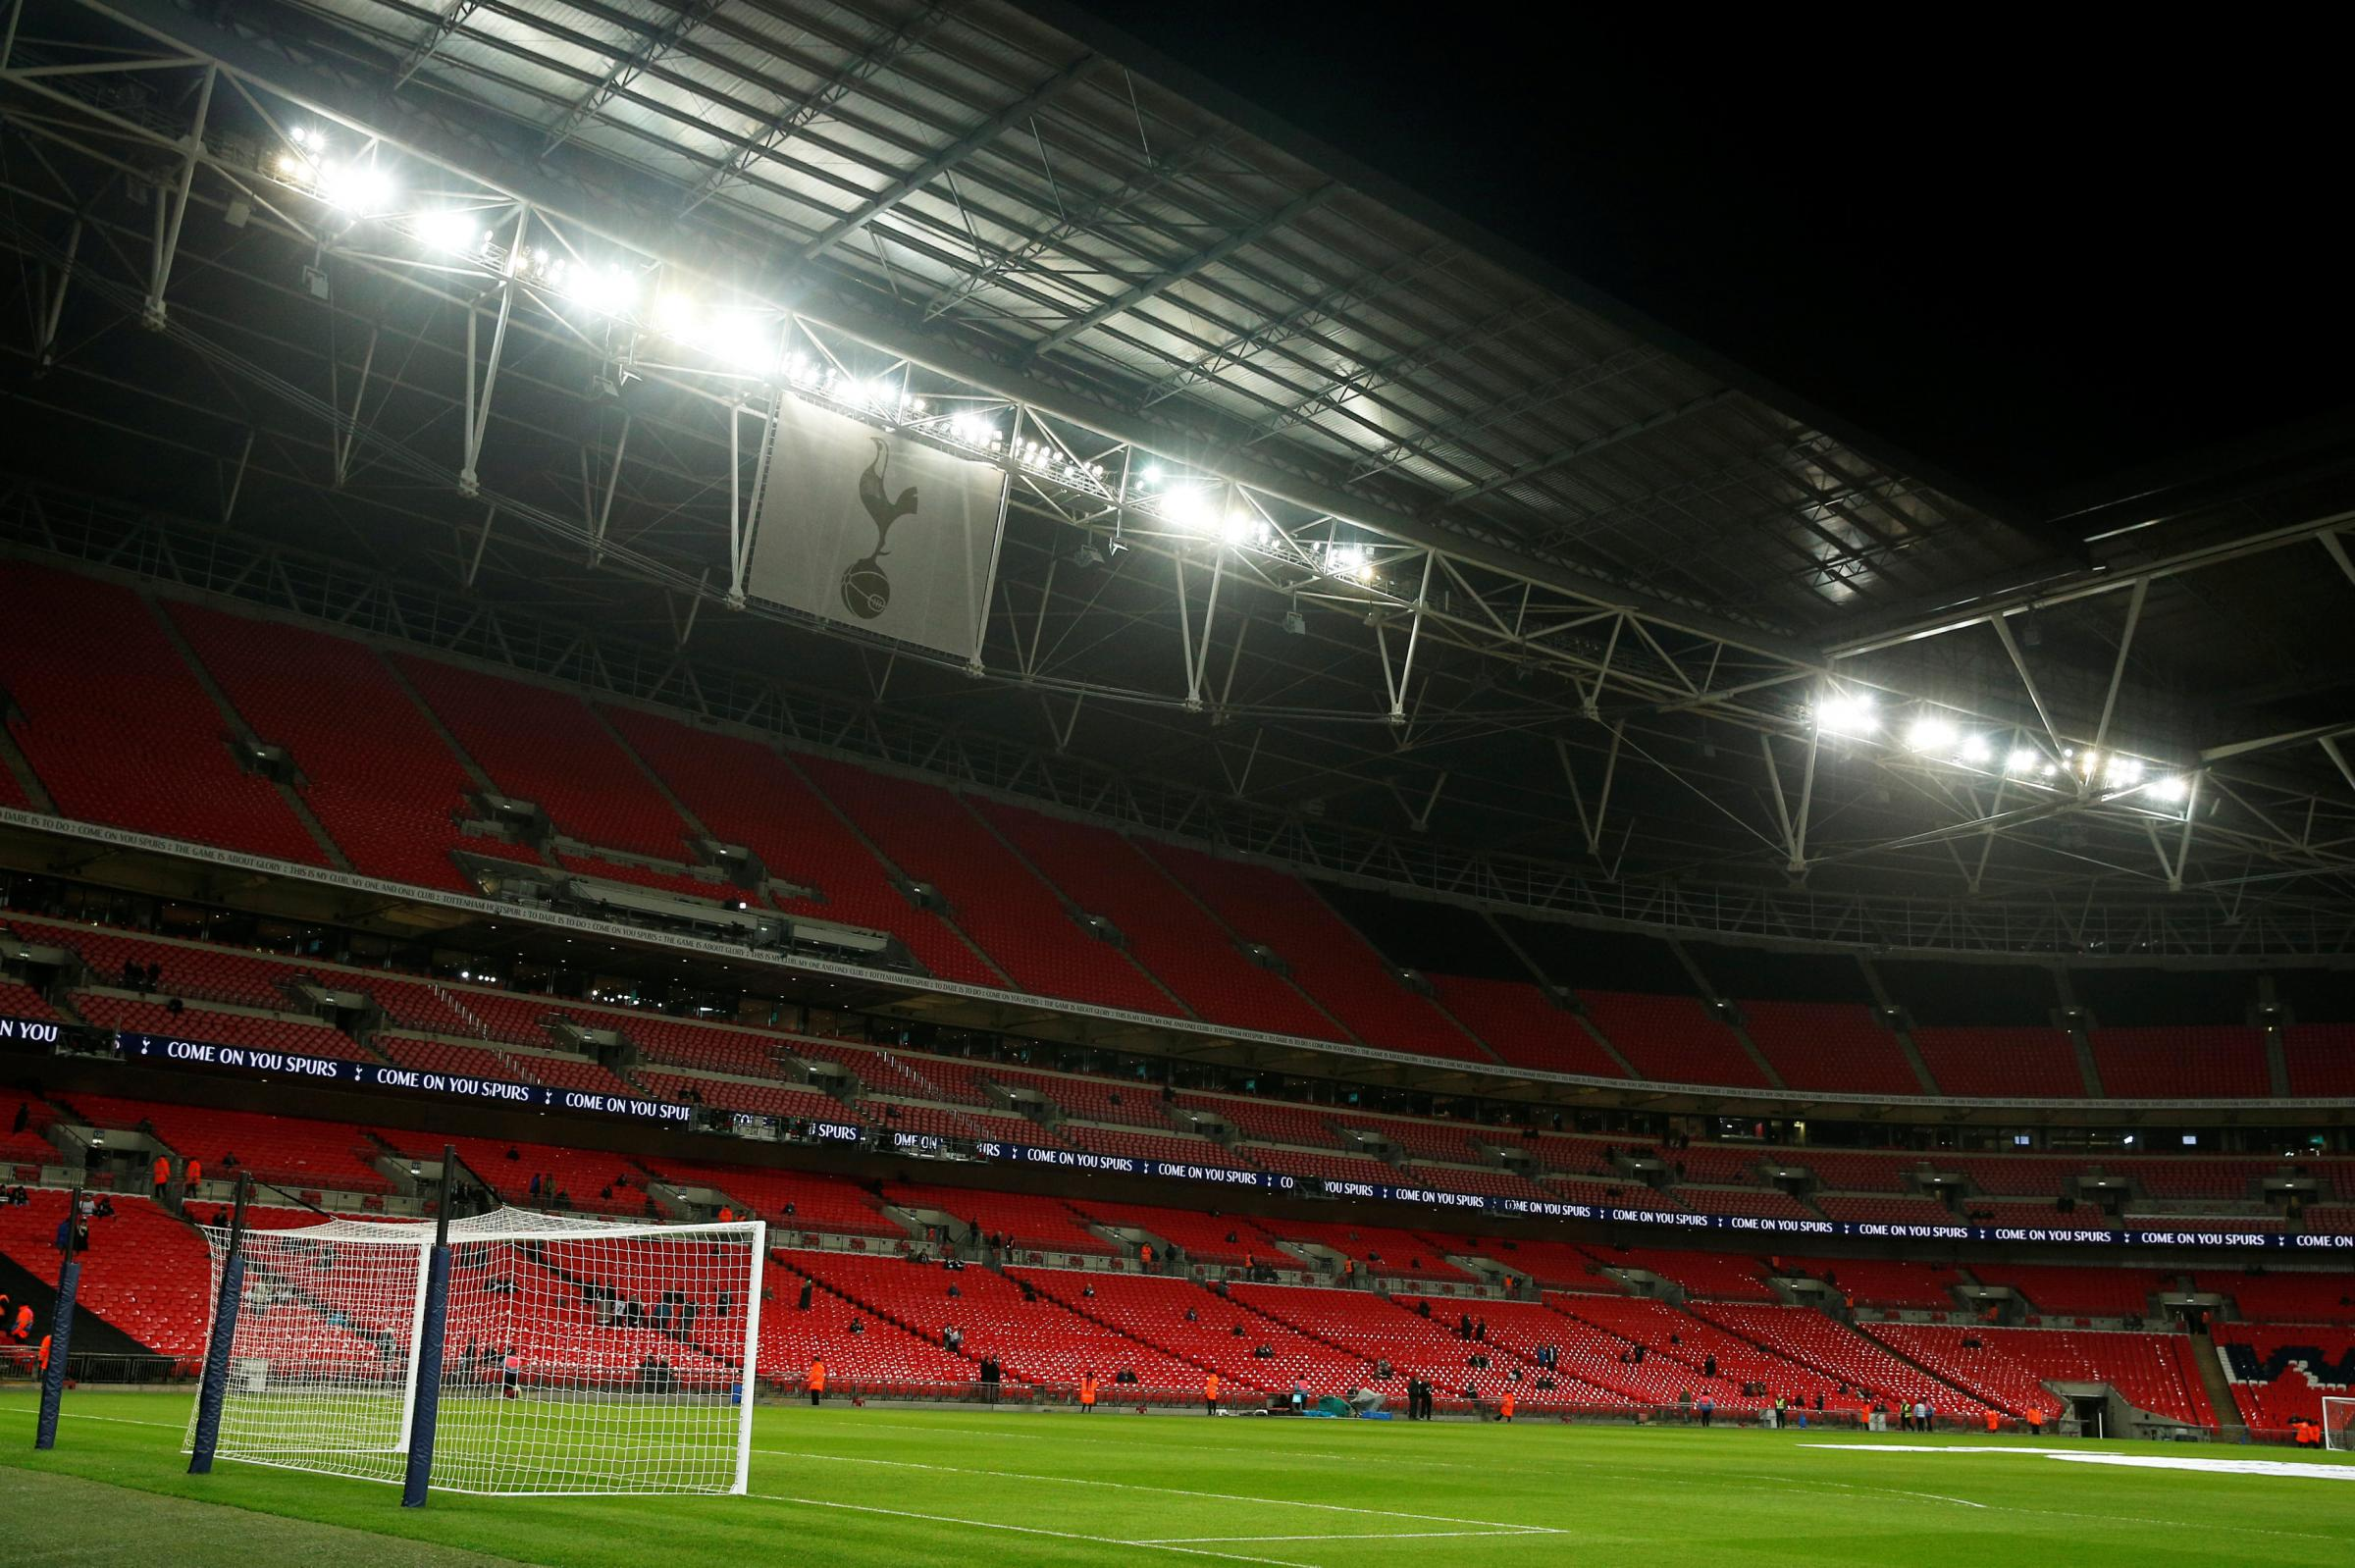 Yet more Spurs home games will be played at Wembley. Picture: Action Images